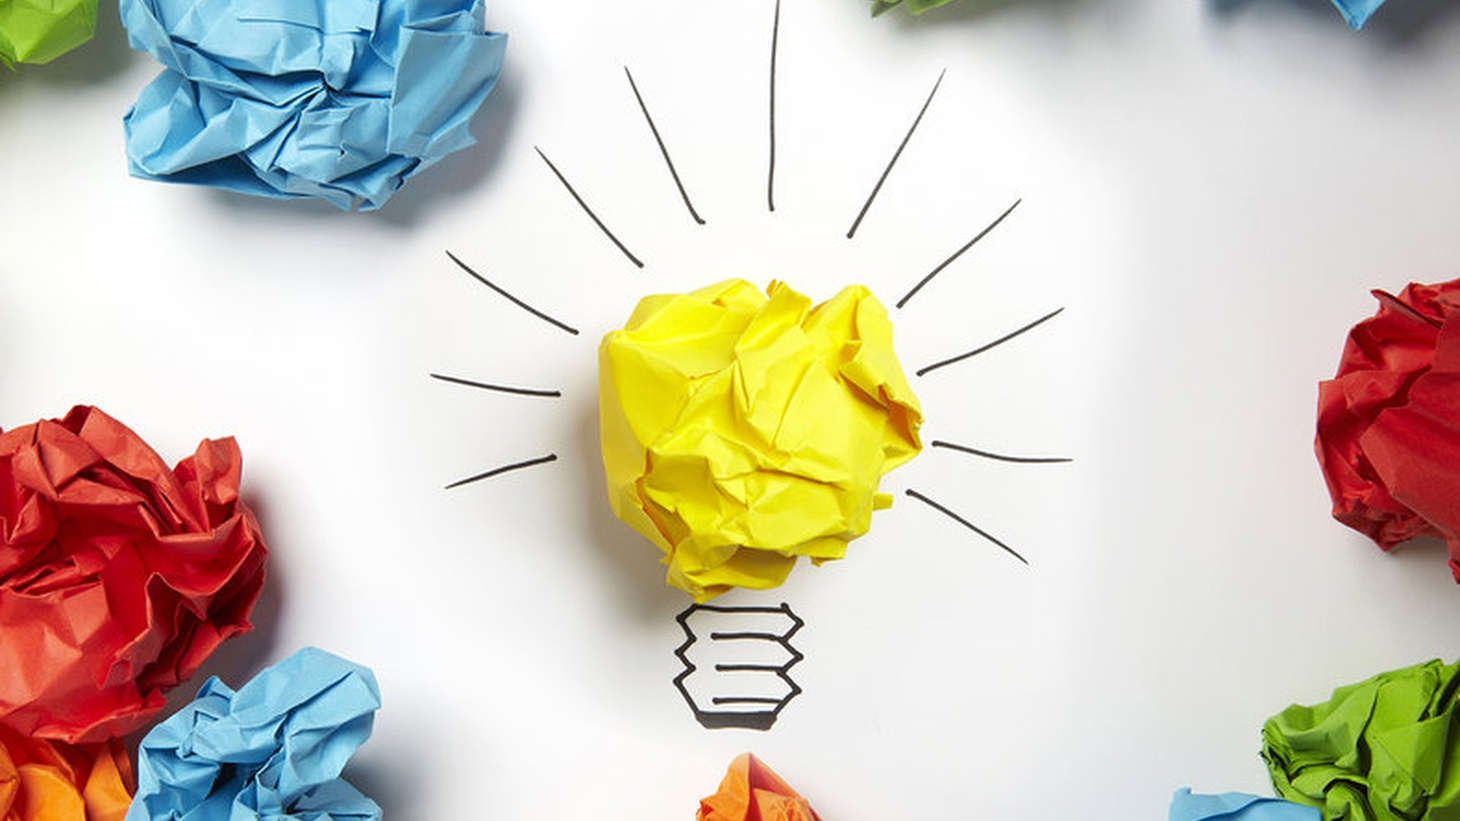 We want to be creative but channeling our creative impulses is no small feat. Is creativity something we are born with or can we learn it? TED speakers examine the mystery of creativity.